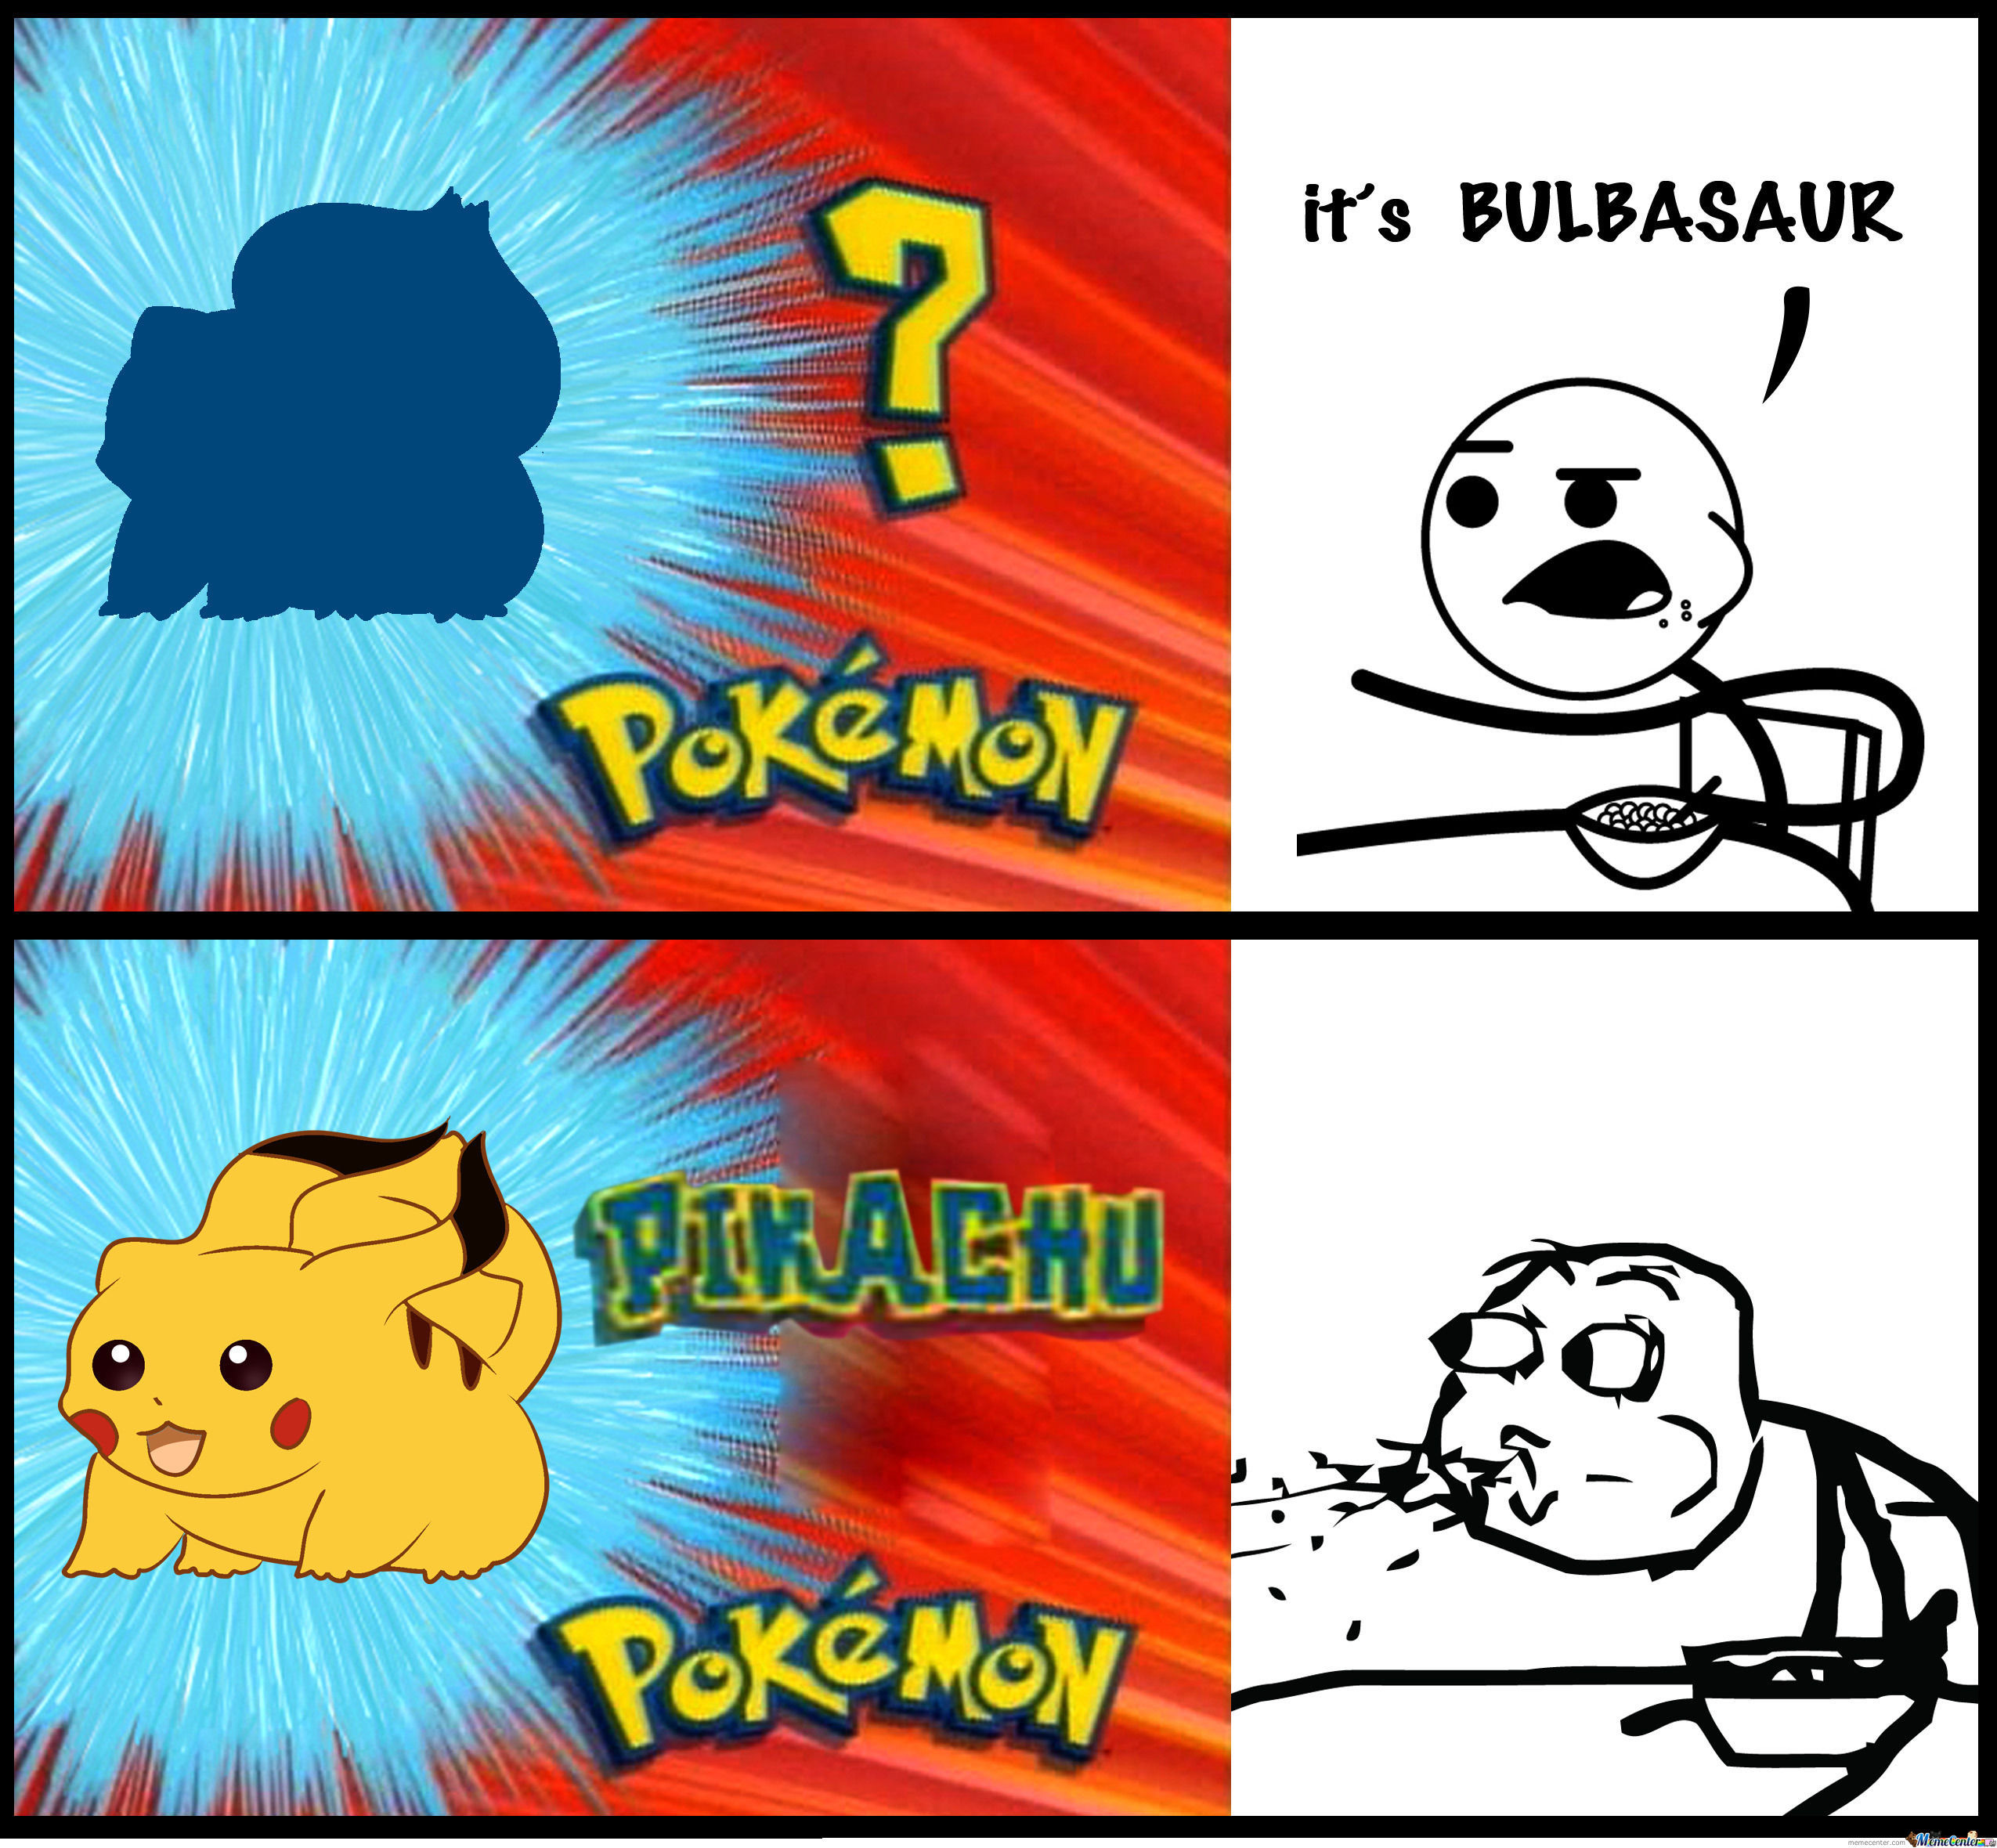 Pokemon meme 19